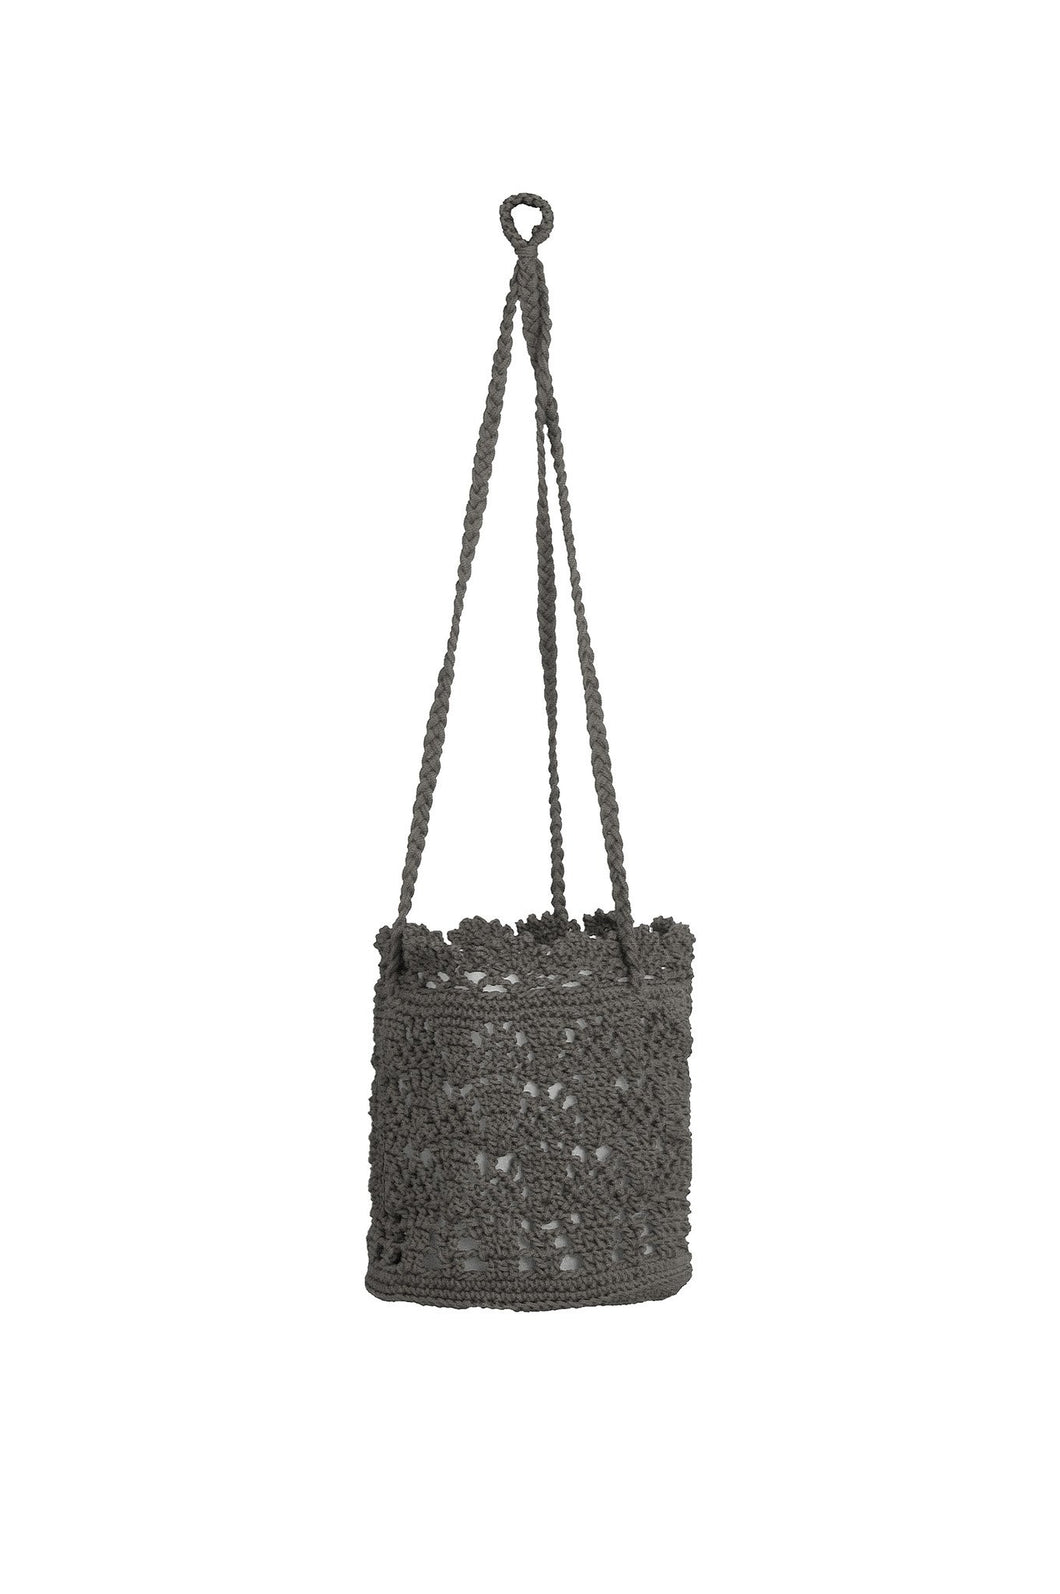 Mode Crochet 8X8X8 Hangng Basket, Charcoal